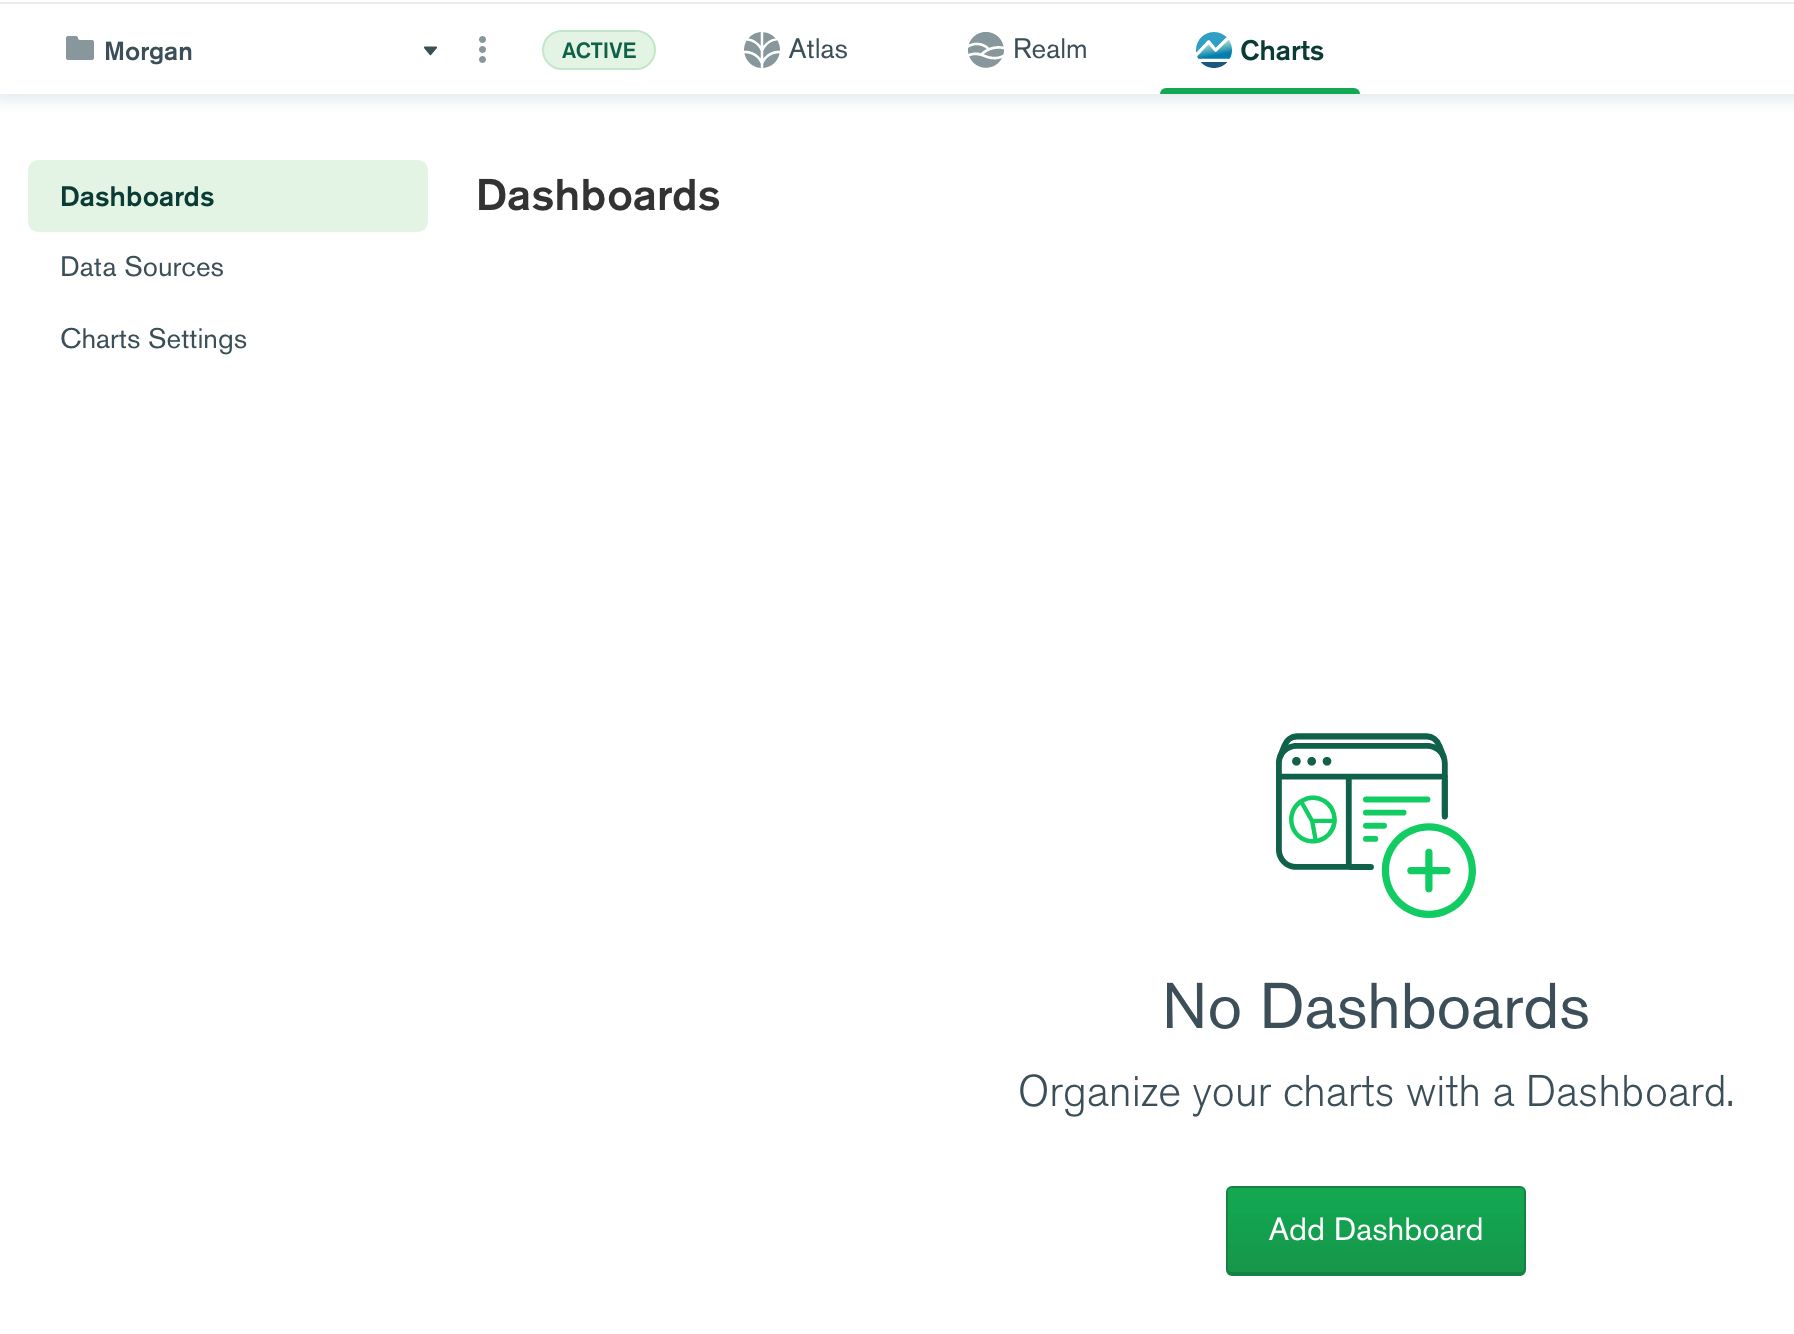 Charts screen capture of adding a new dashboard